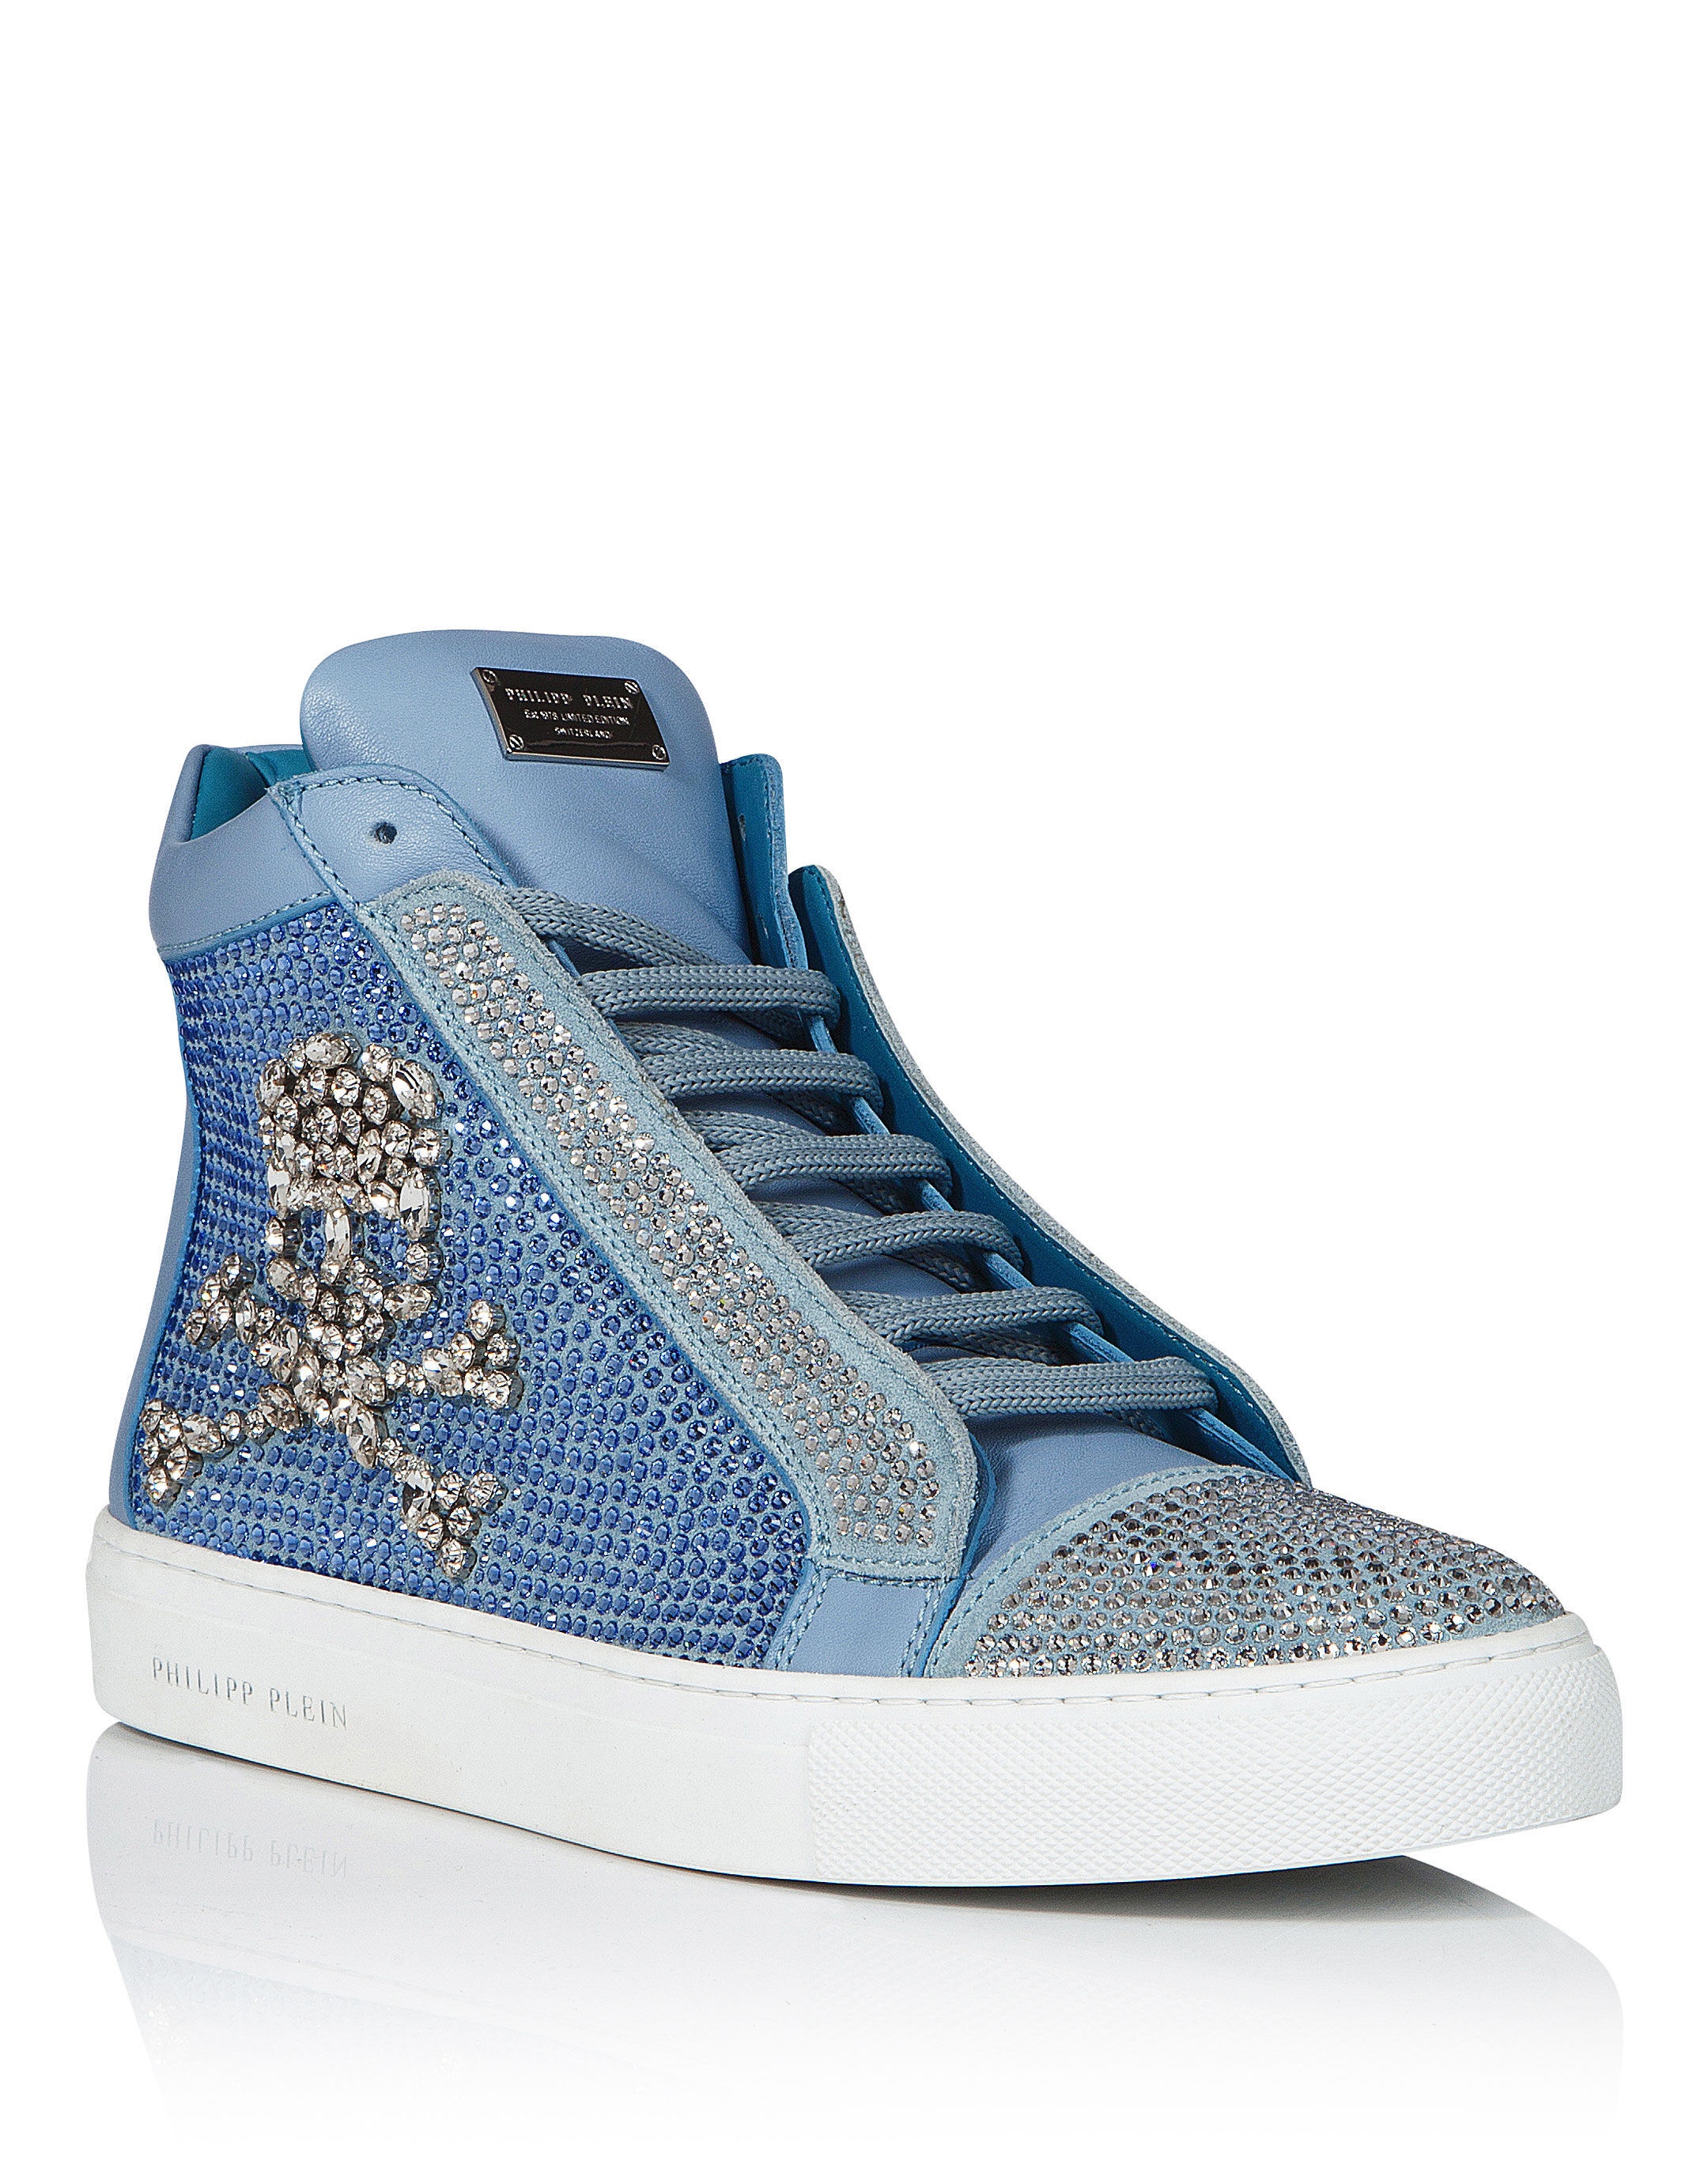 Blue Sparkly Sneakers